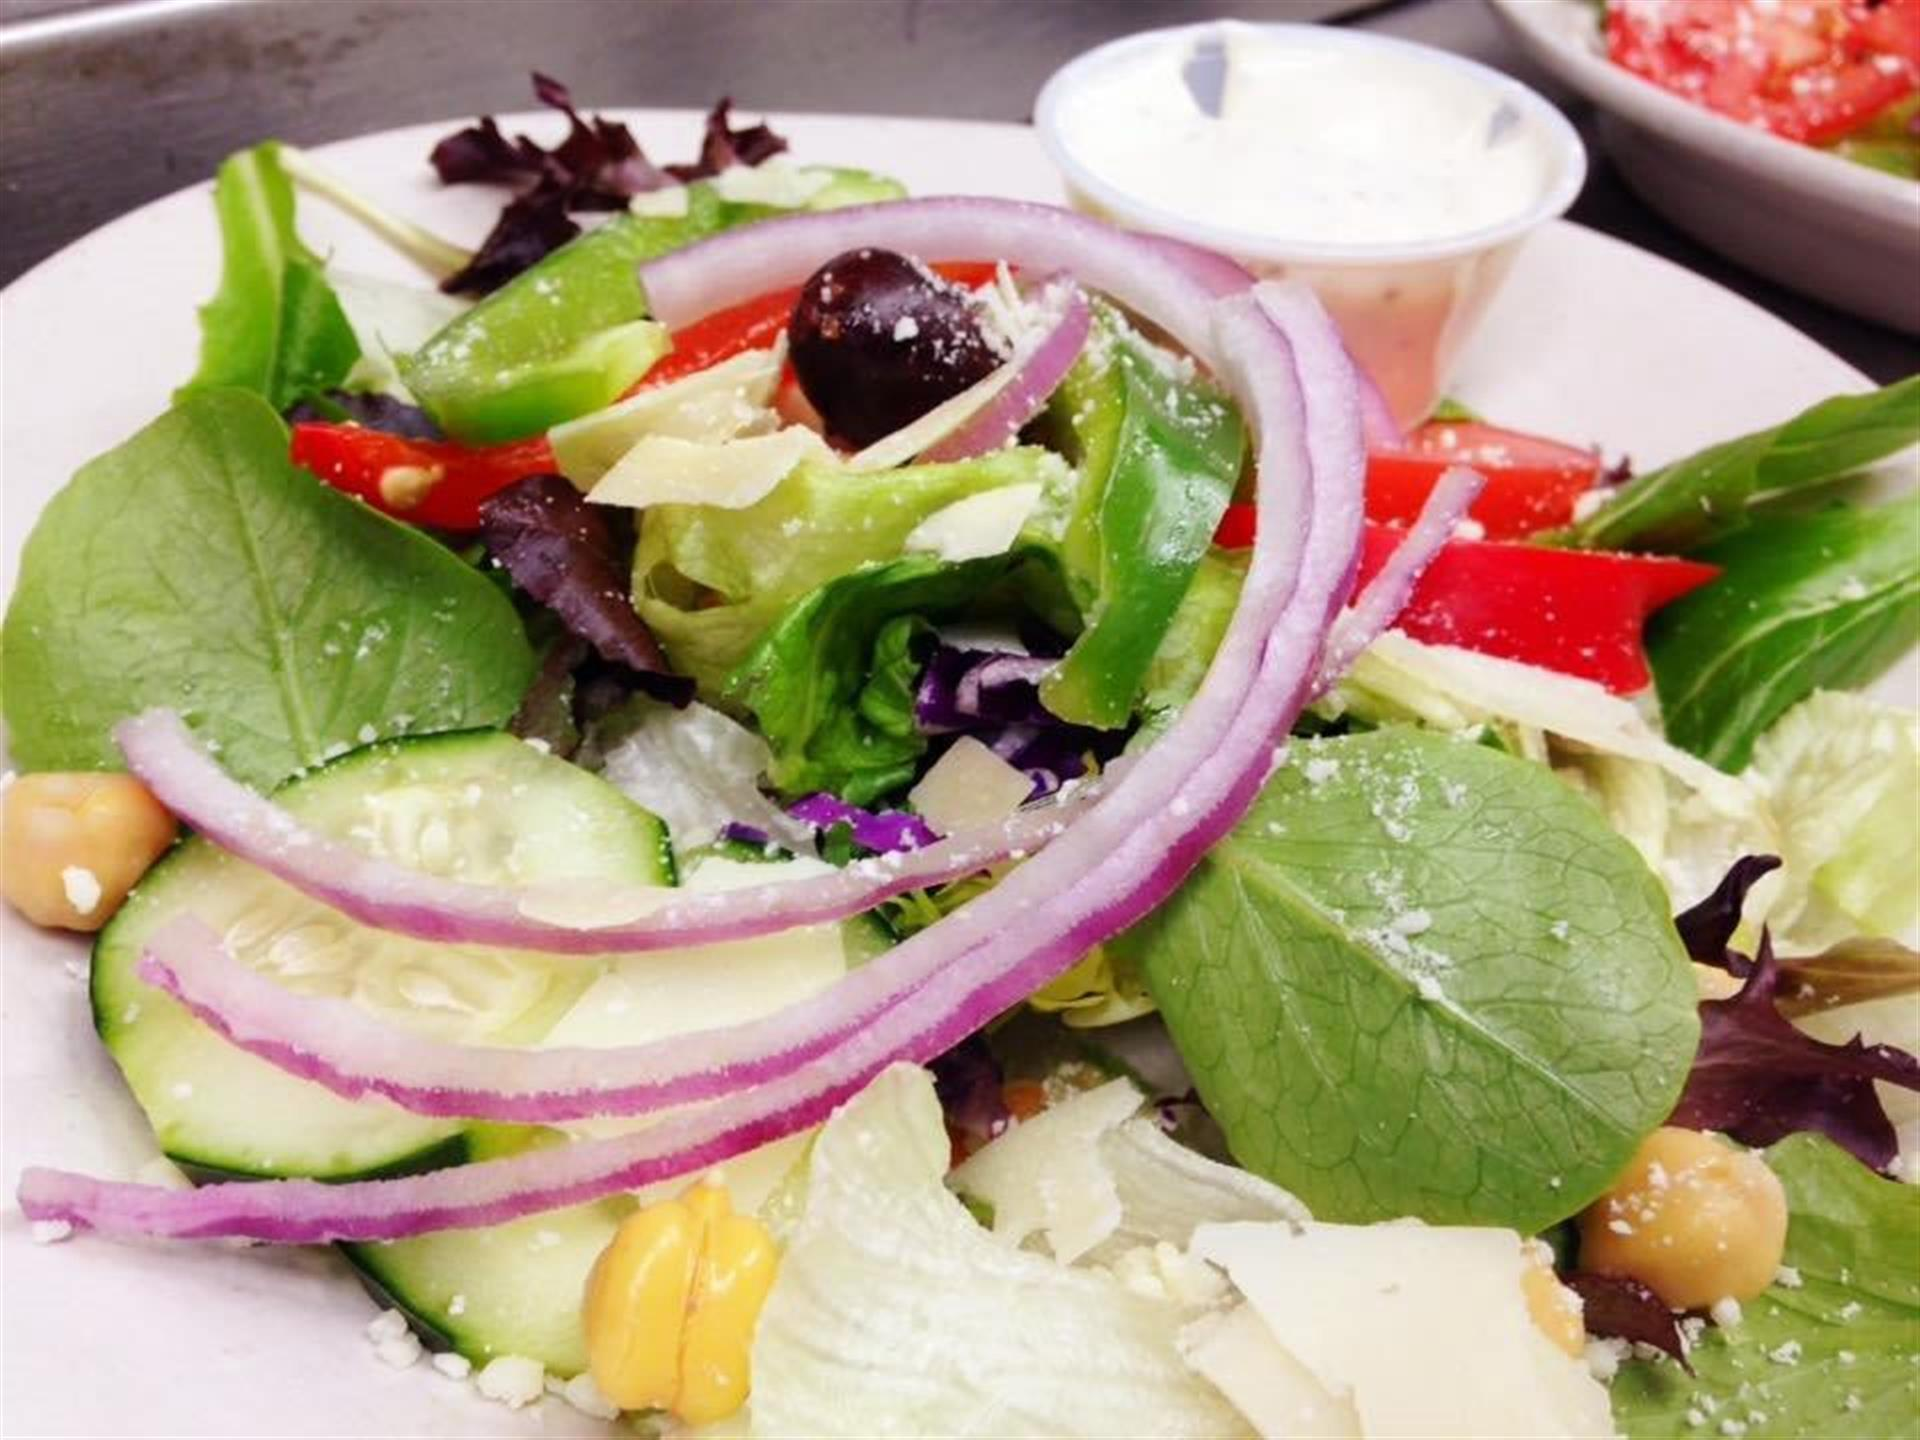 House Salad with mixed greens, olives, cheese, onion, and cucumber tossed in a vinaigarette dressing